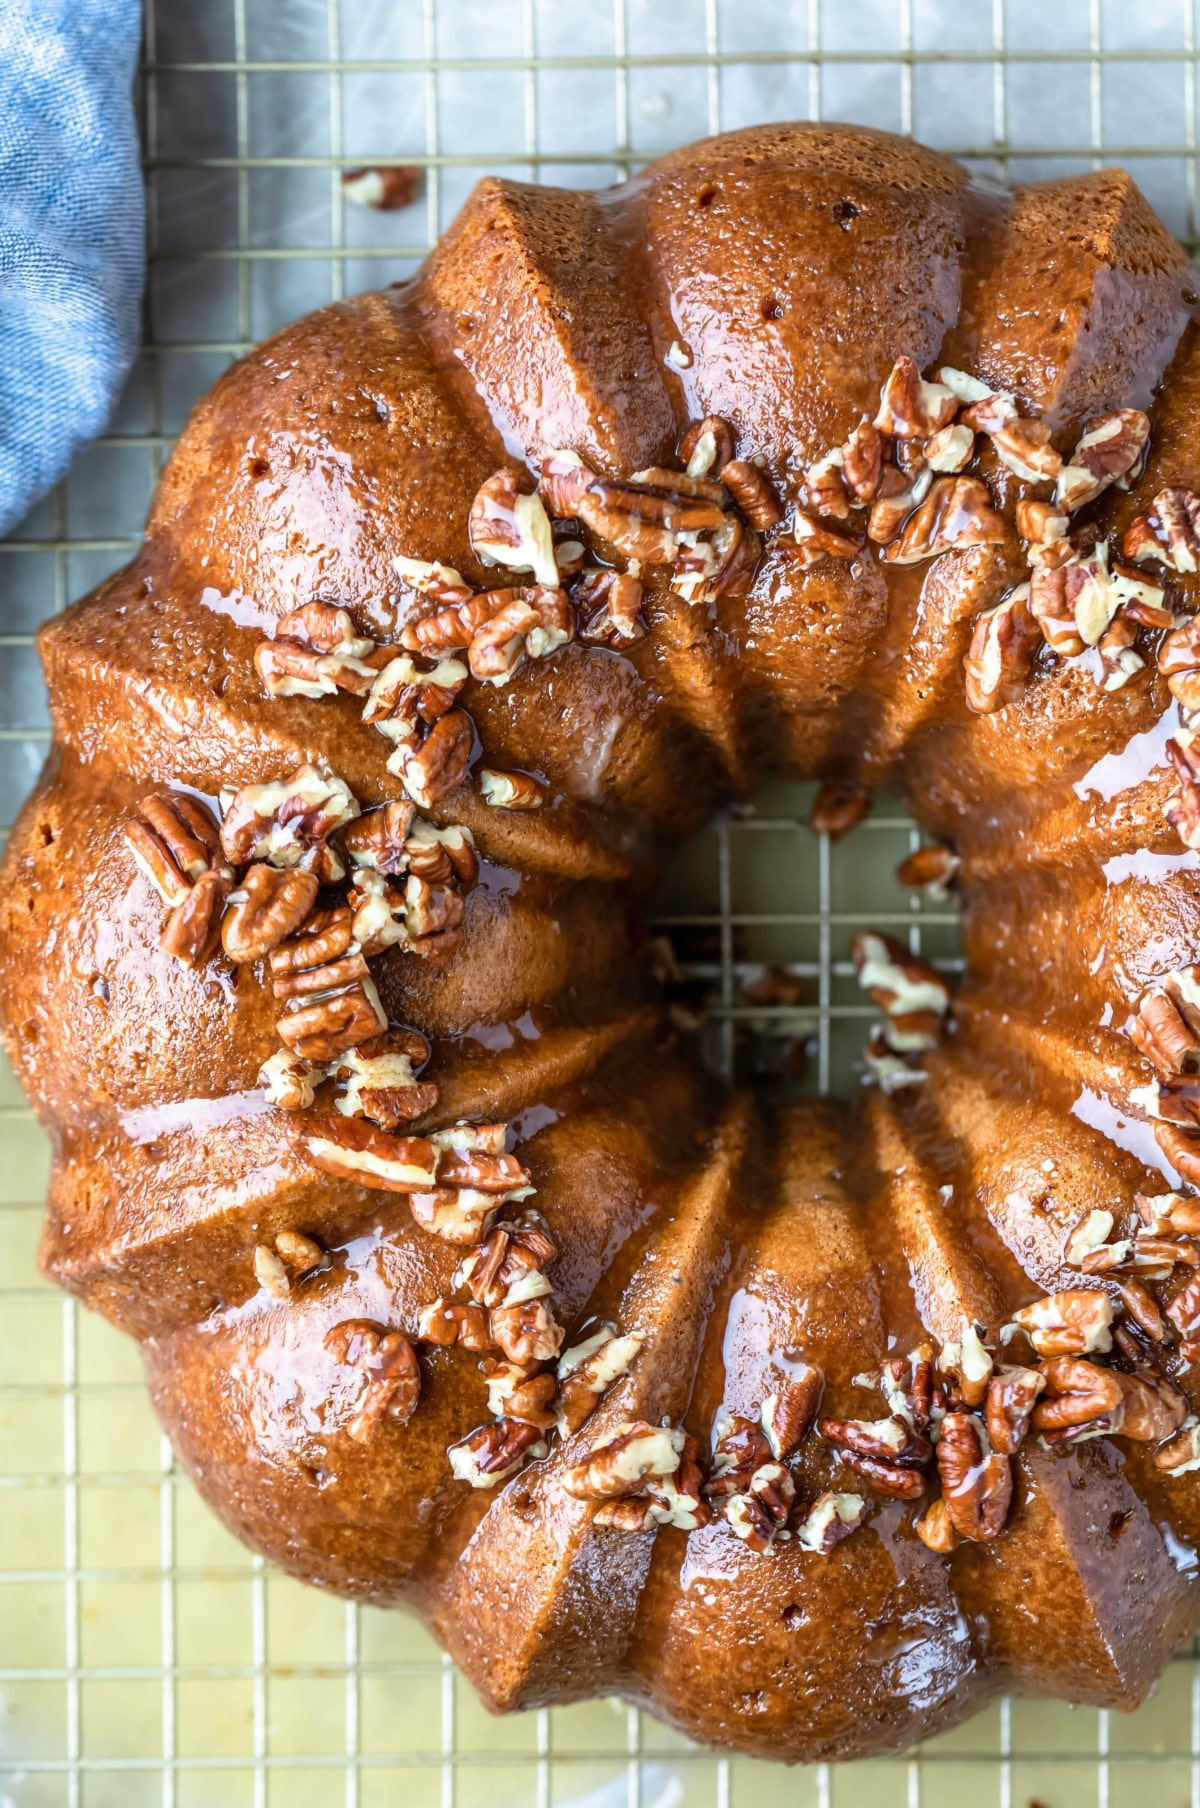 Irish cream bundt cake topped with pecans